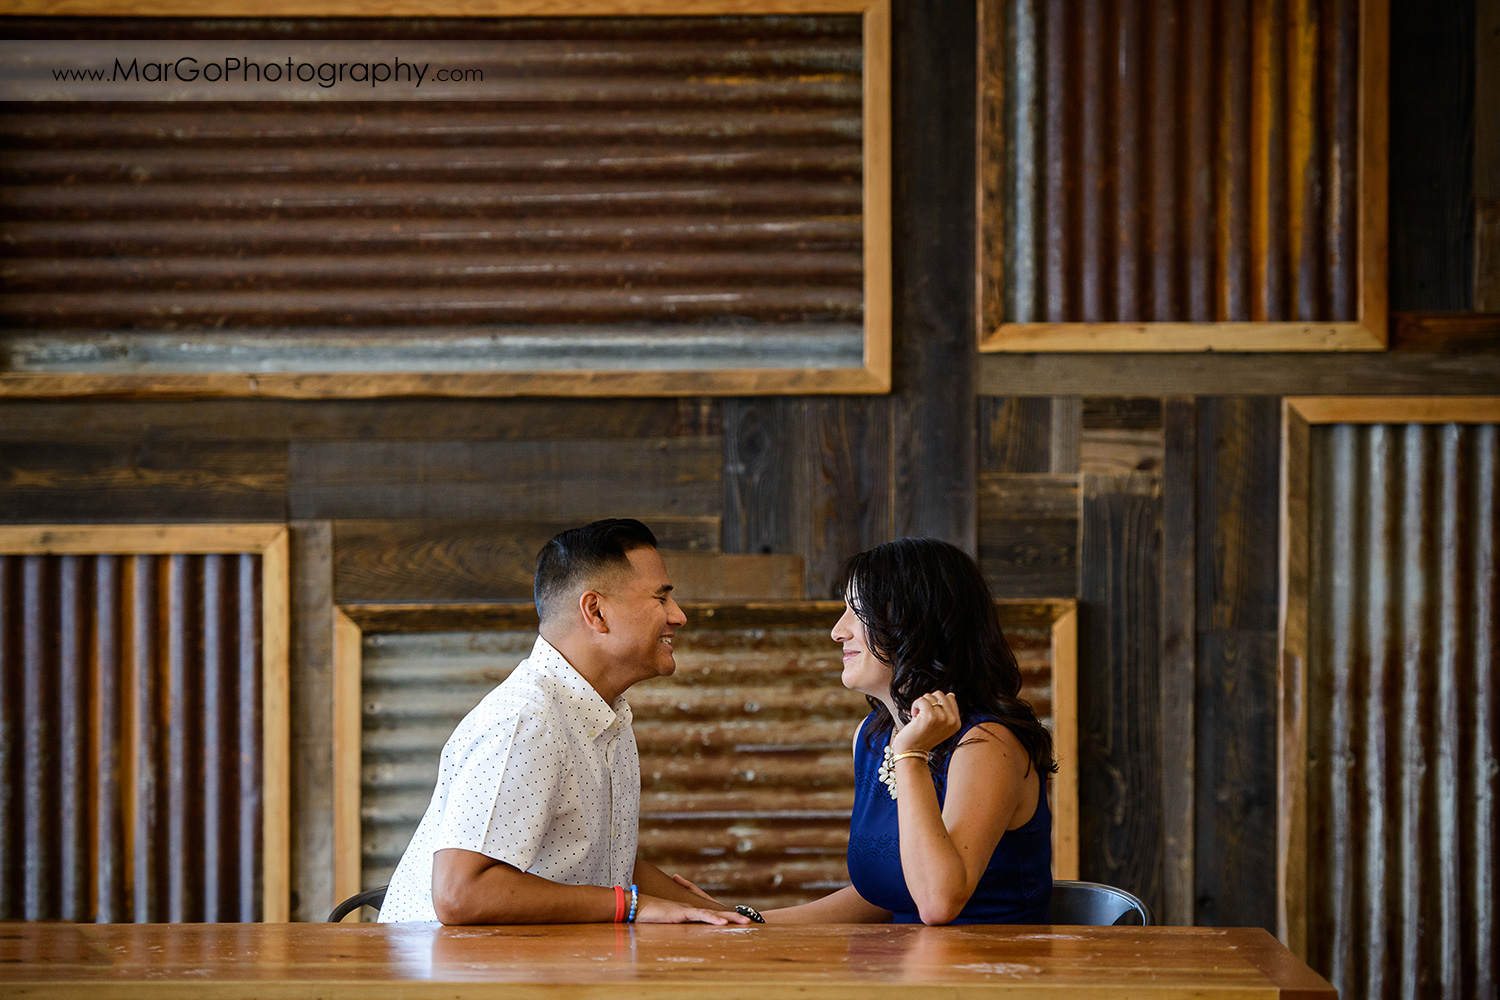 woman in blue dress and man in white shirt sitting at the table and looking at each other during engagement session at San Pedro Square Market in San Jose